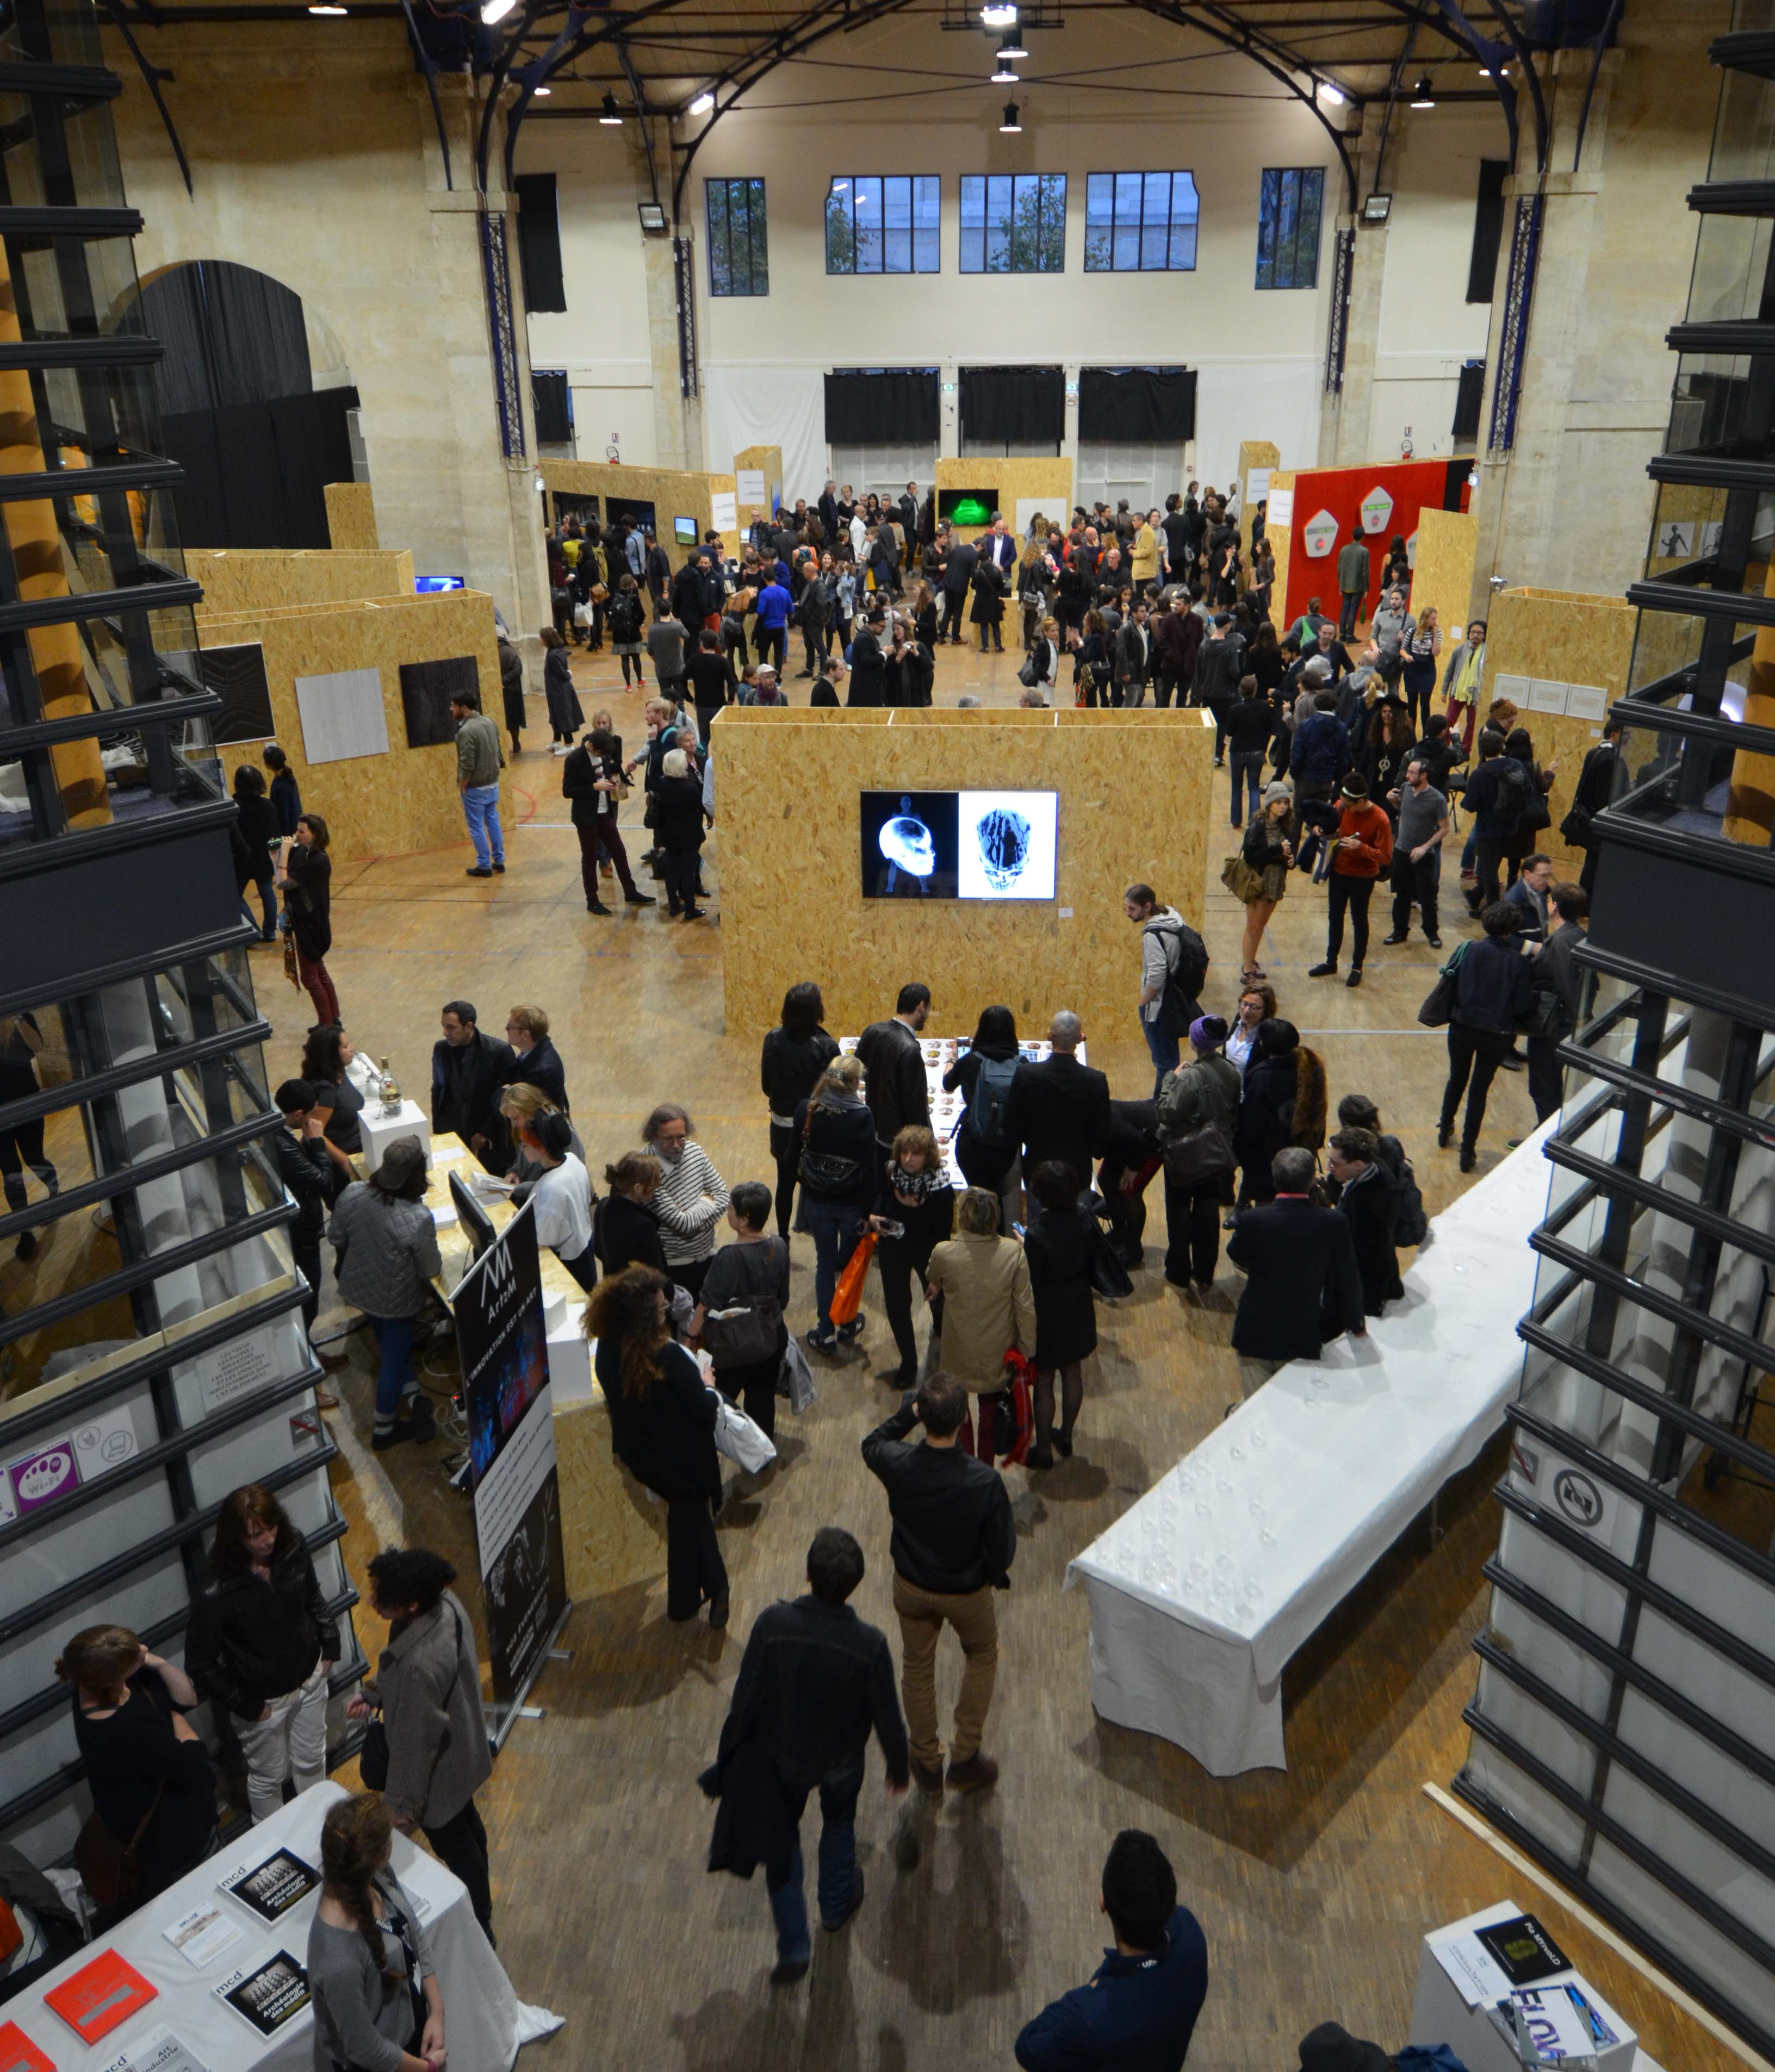 Show Off 2014 – The Digital Art Fair. France